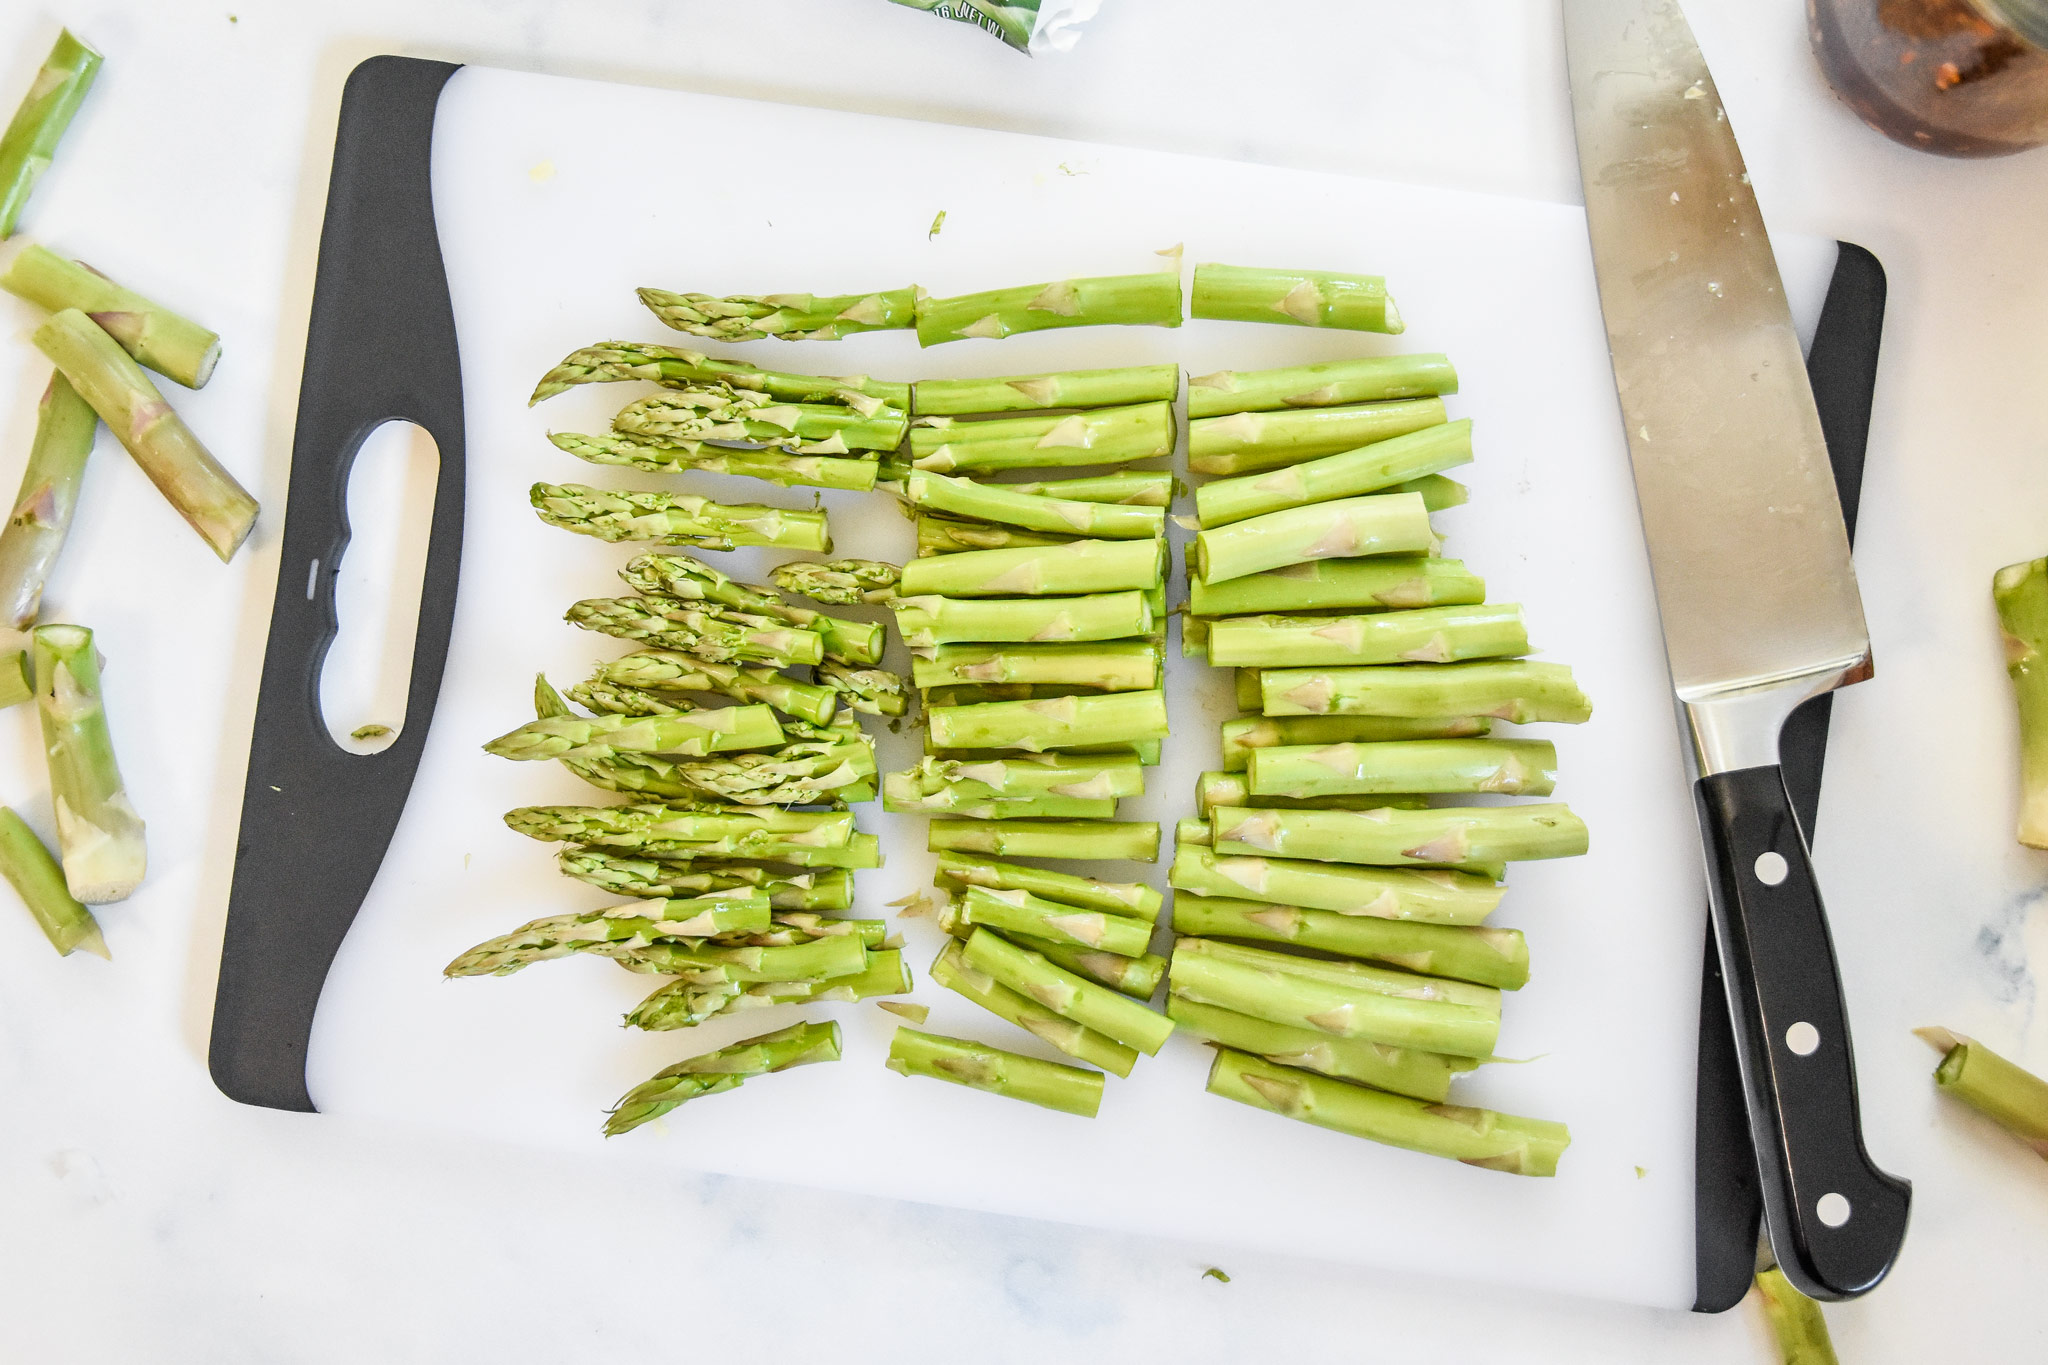 asparagus cut into thirds on a cutting board